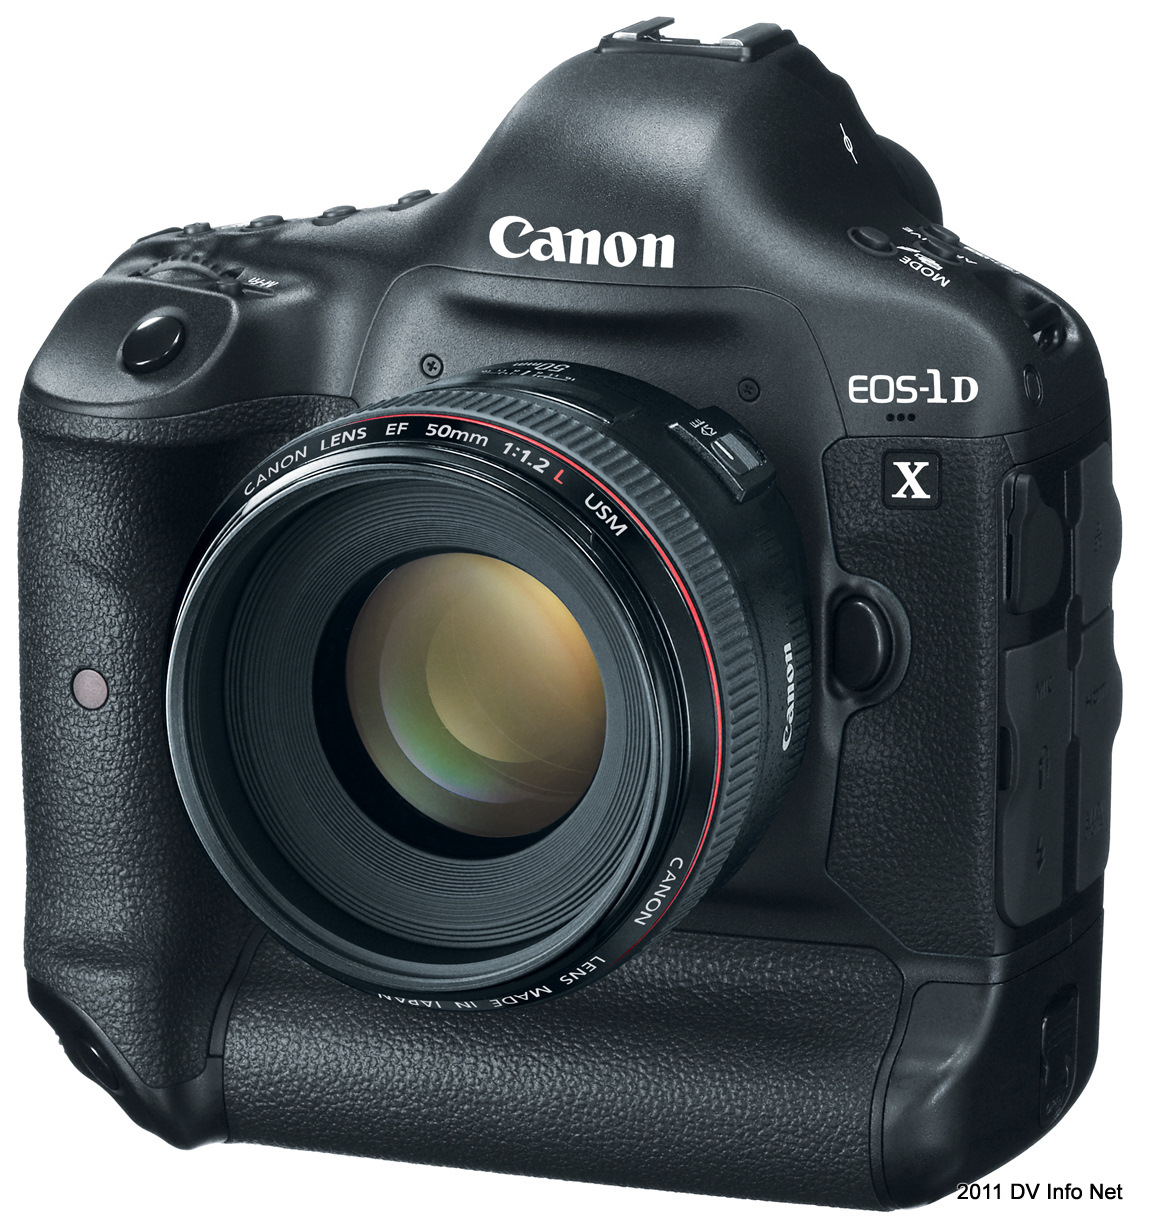 Camera Canon Dslr Camera Usa canon usa introduces eos 1d x digital slr camera the 1d